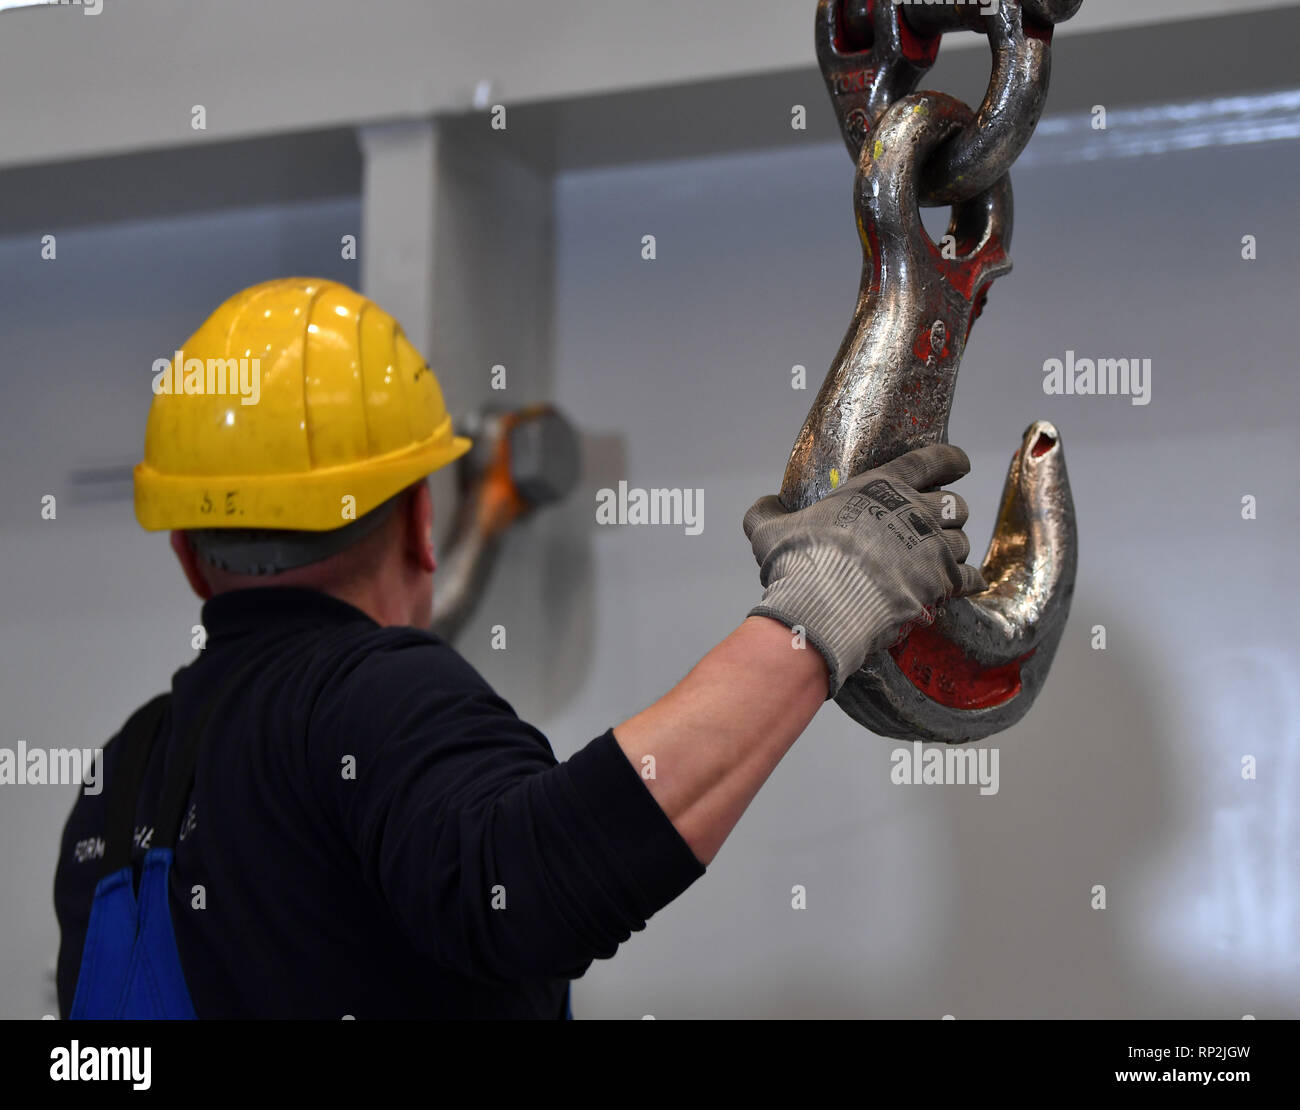 Erfurt, Germany  20th Feb, 2019  An employee attaches the component